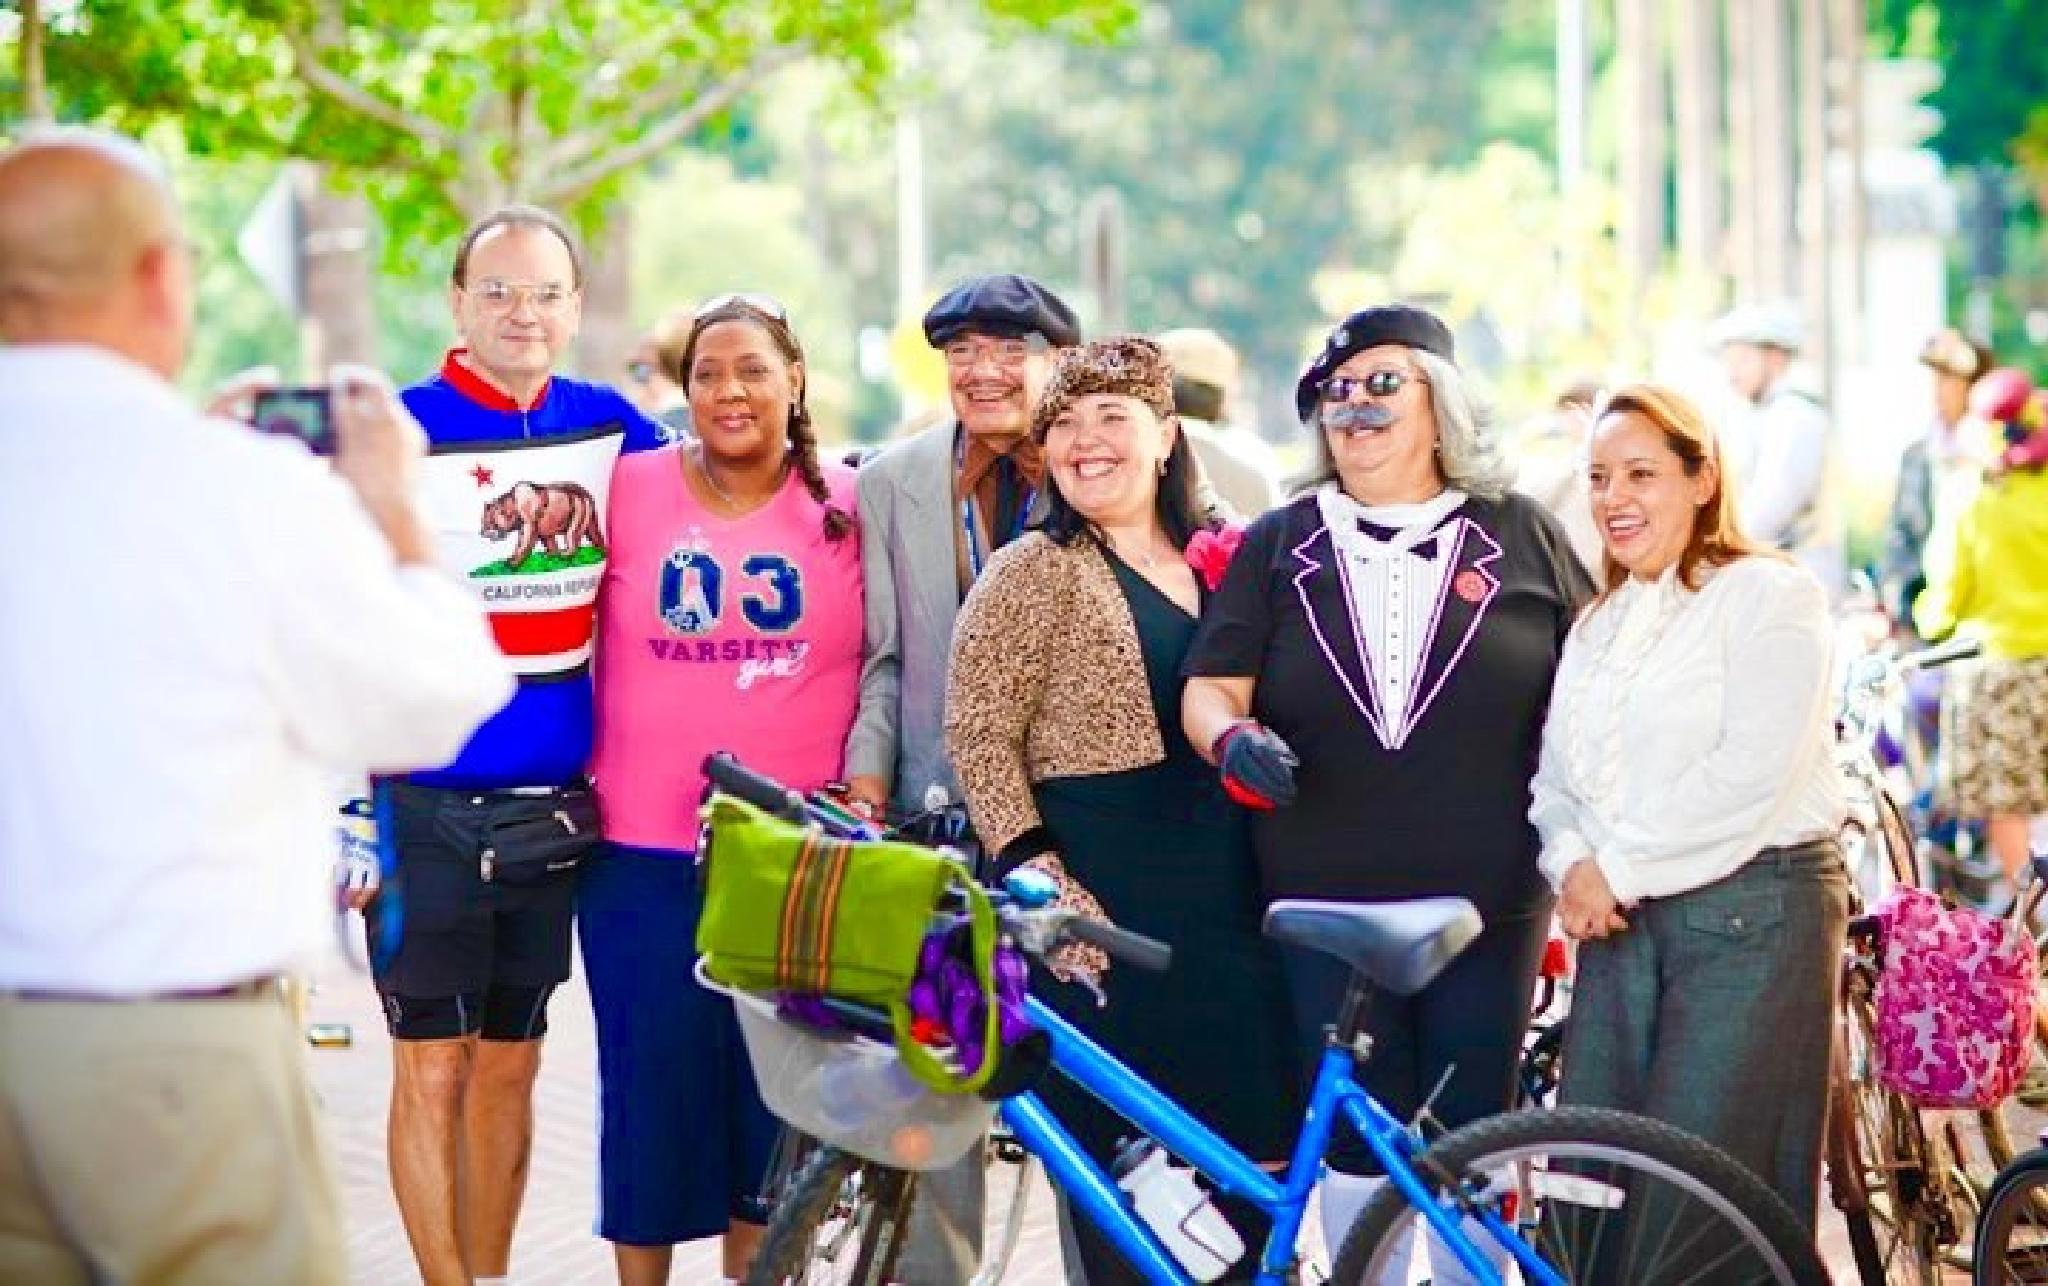 Friends - Moxie and Tweed Ride by Snickandmephotography